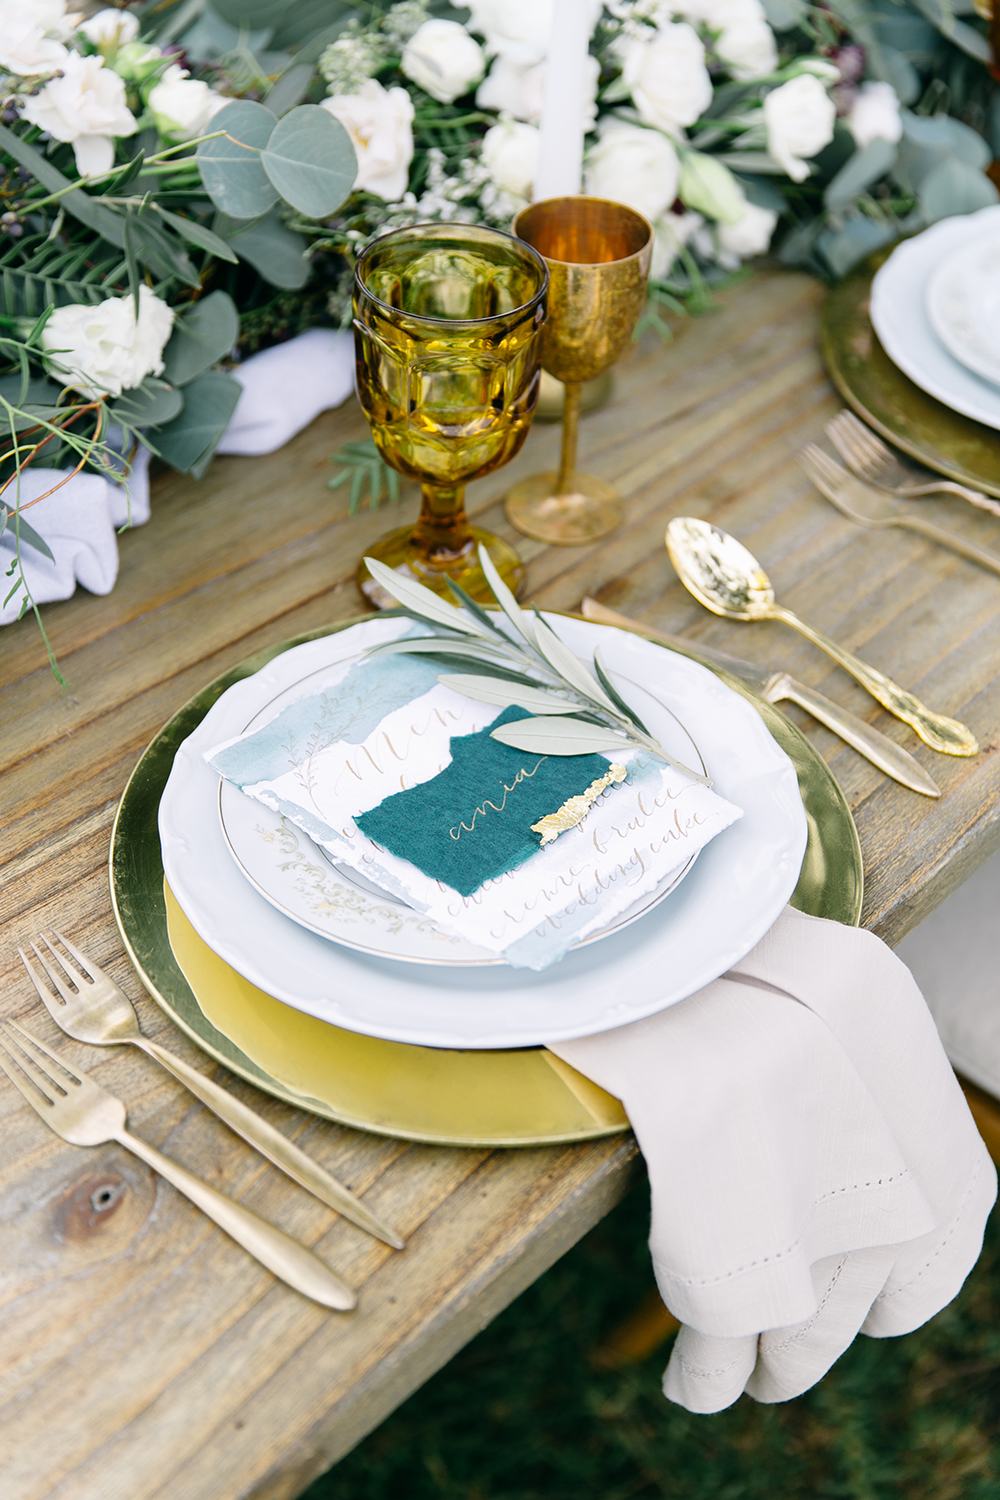 modern wedding receptions - photo by Kylie Chevalier Photography https://ruffledblog.com/nature-inspired-wedding-ideas-with-blue-and-amber